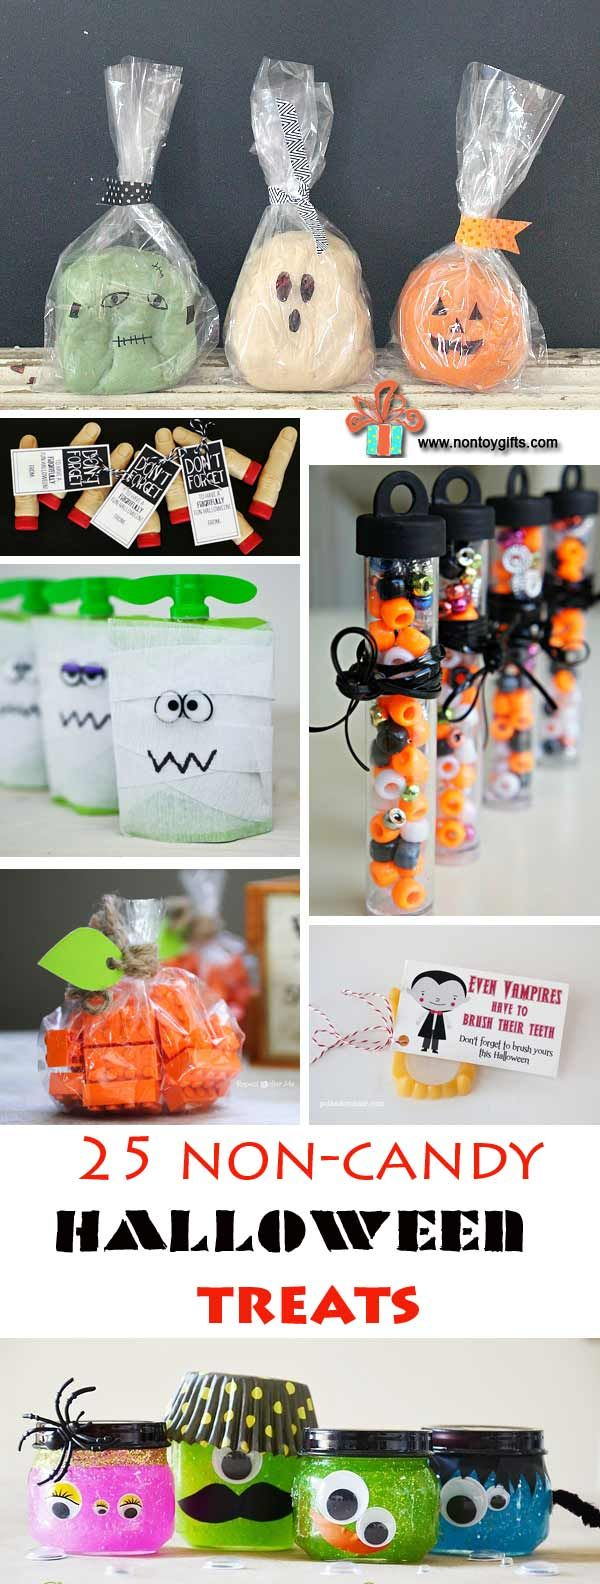 11 best Party Games images on Pinterest | Halloween crafts ...